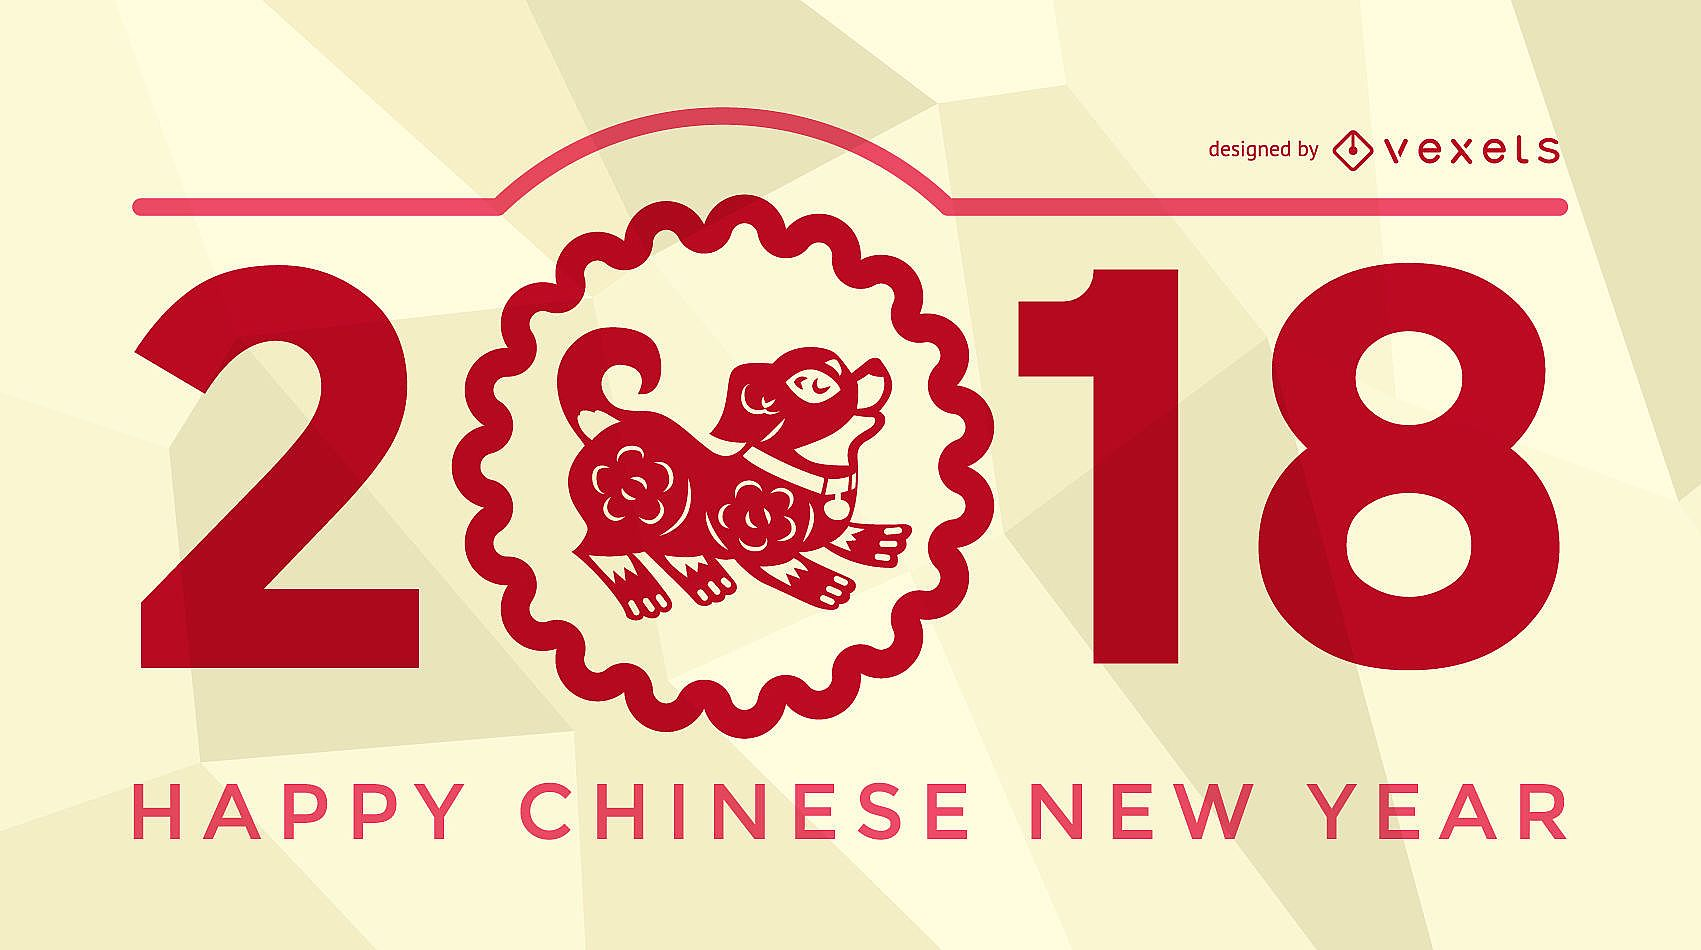 Happy Chinese New Year 2018 !